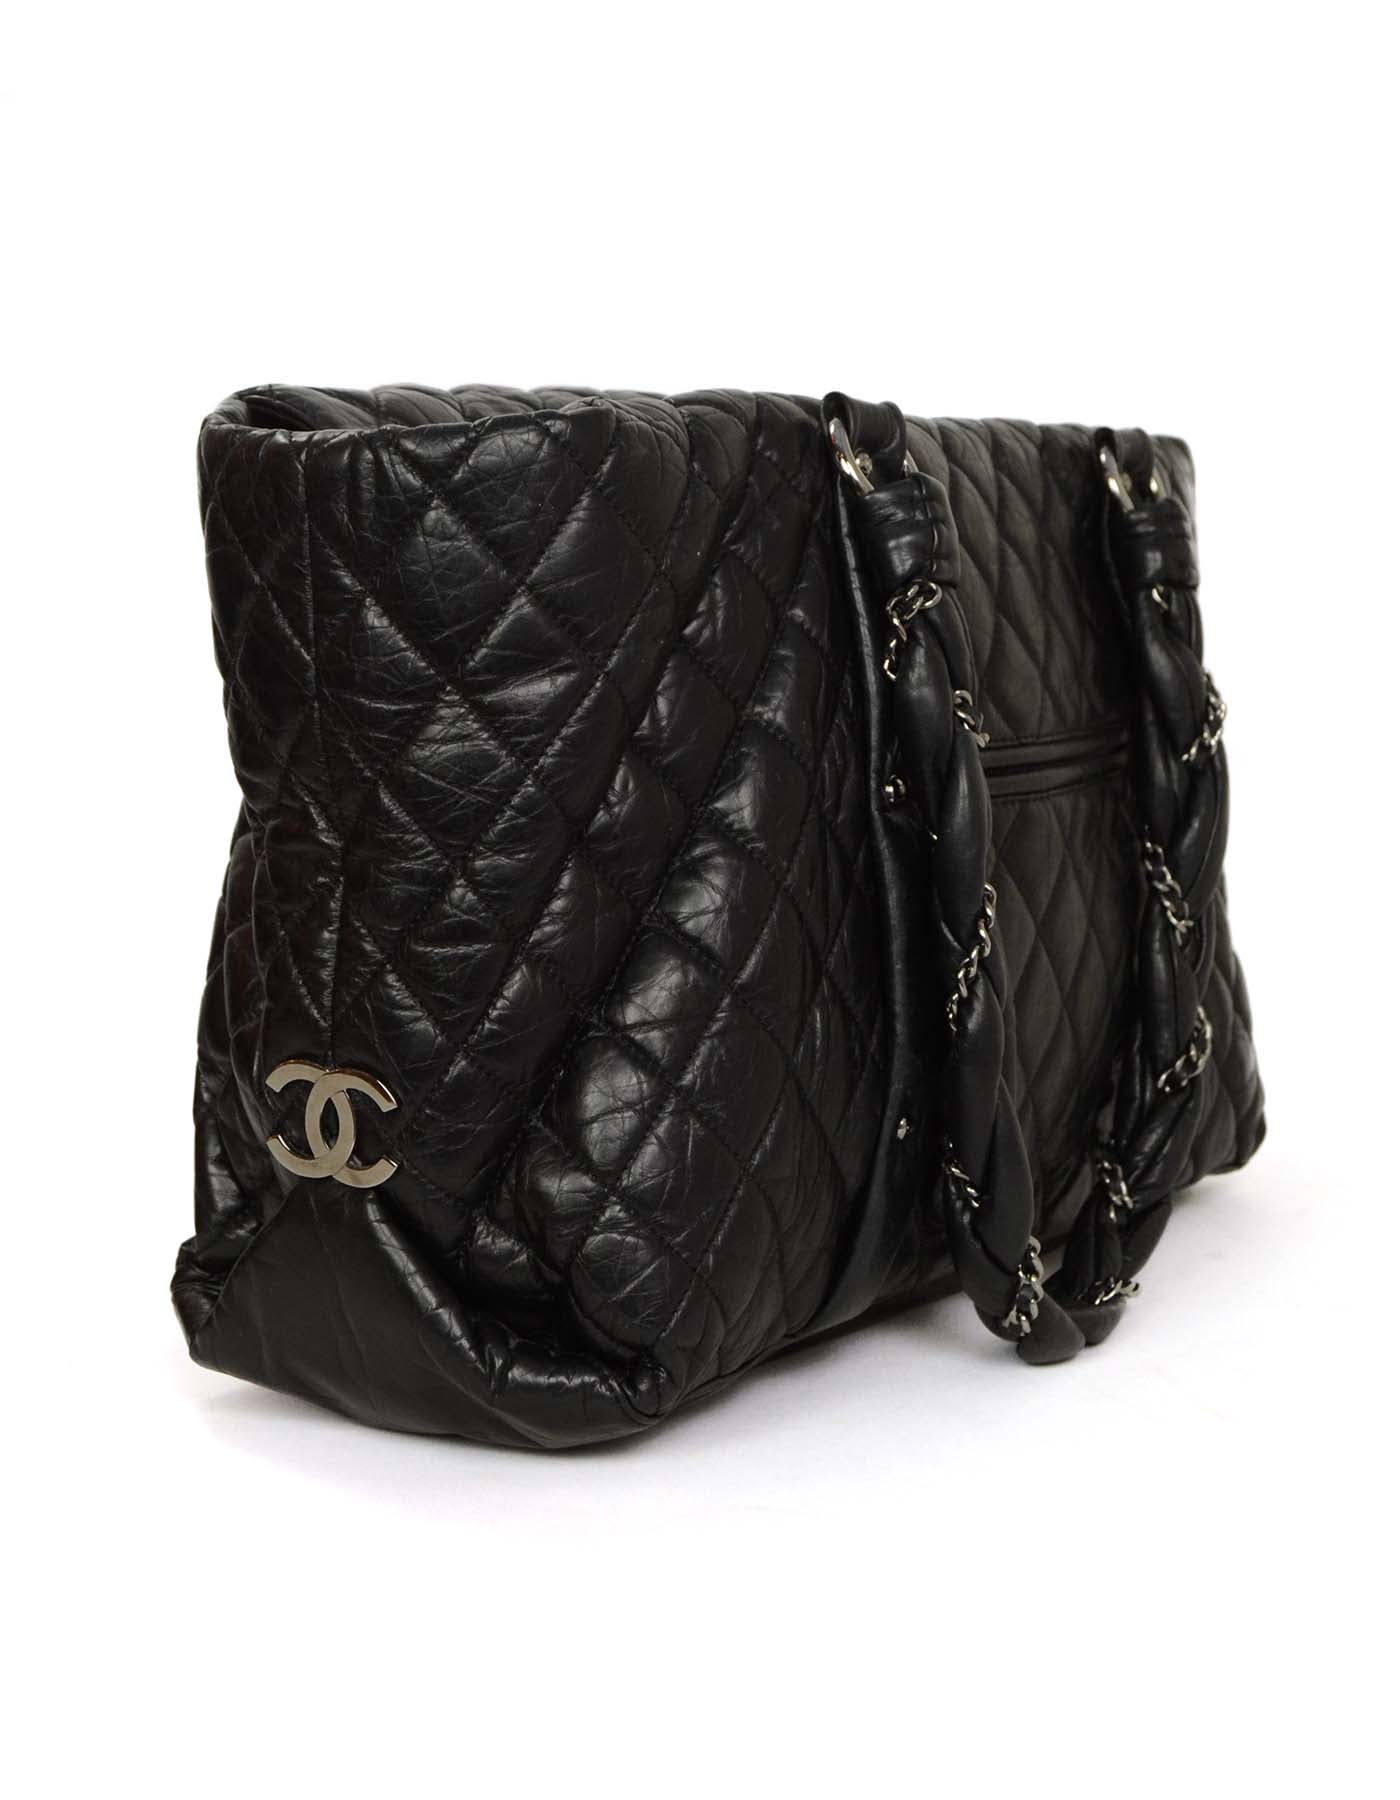 2daf5bbc540858 Chanel Black Distressed Quilted Lady Braid Ligne Tote Bag SHW For Sale at  1stdibs